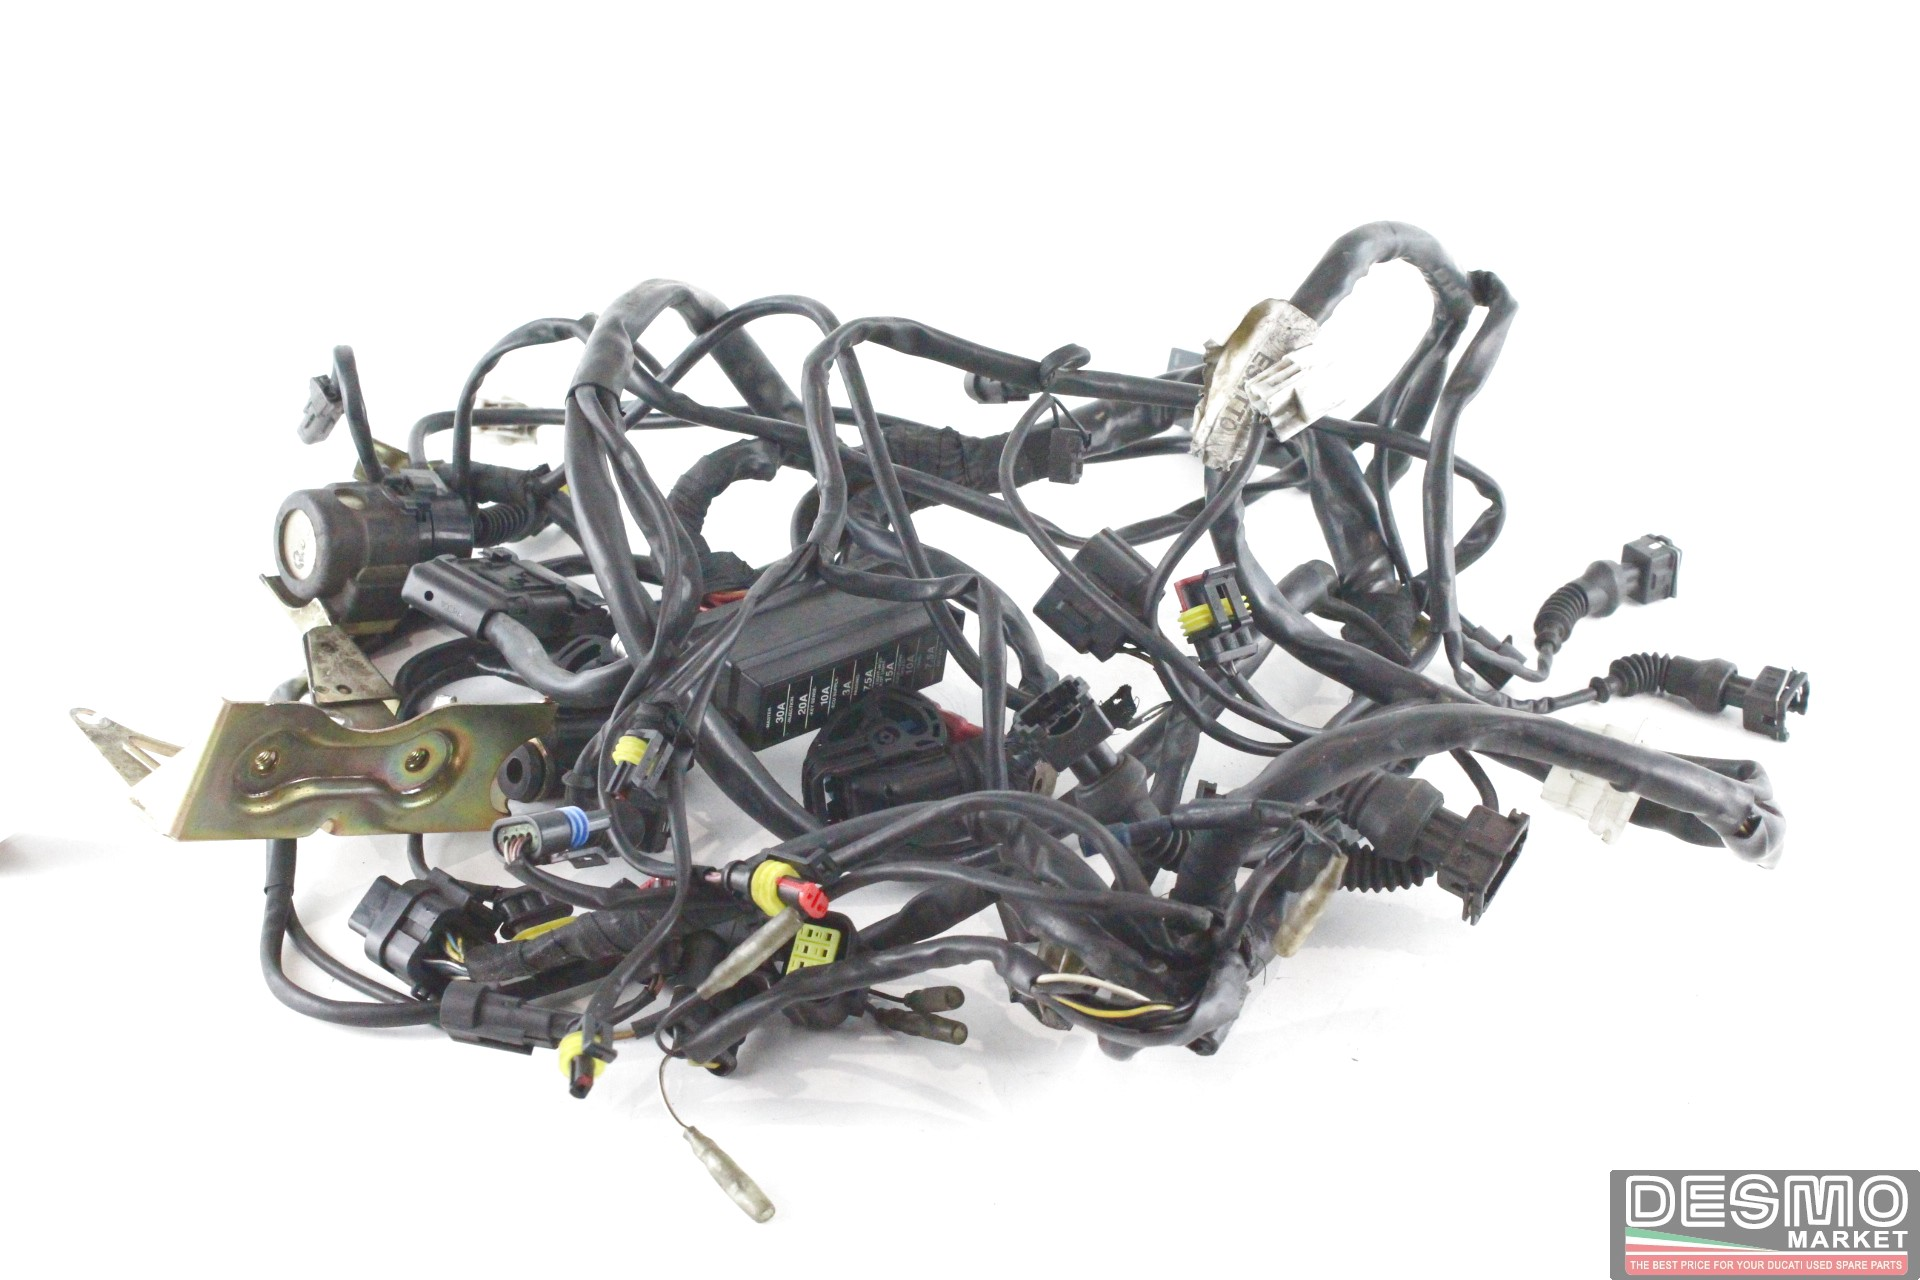 Electric Wiring Ducati Monster S4r 996 3250